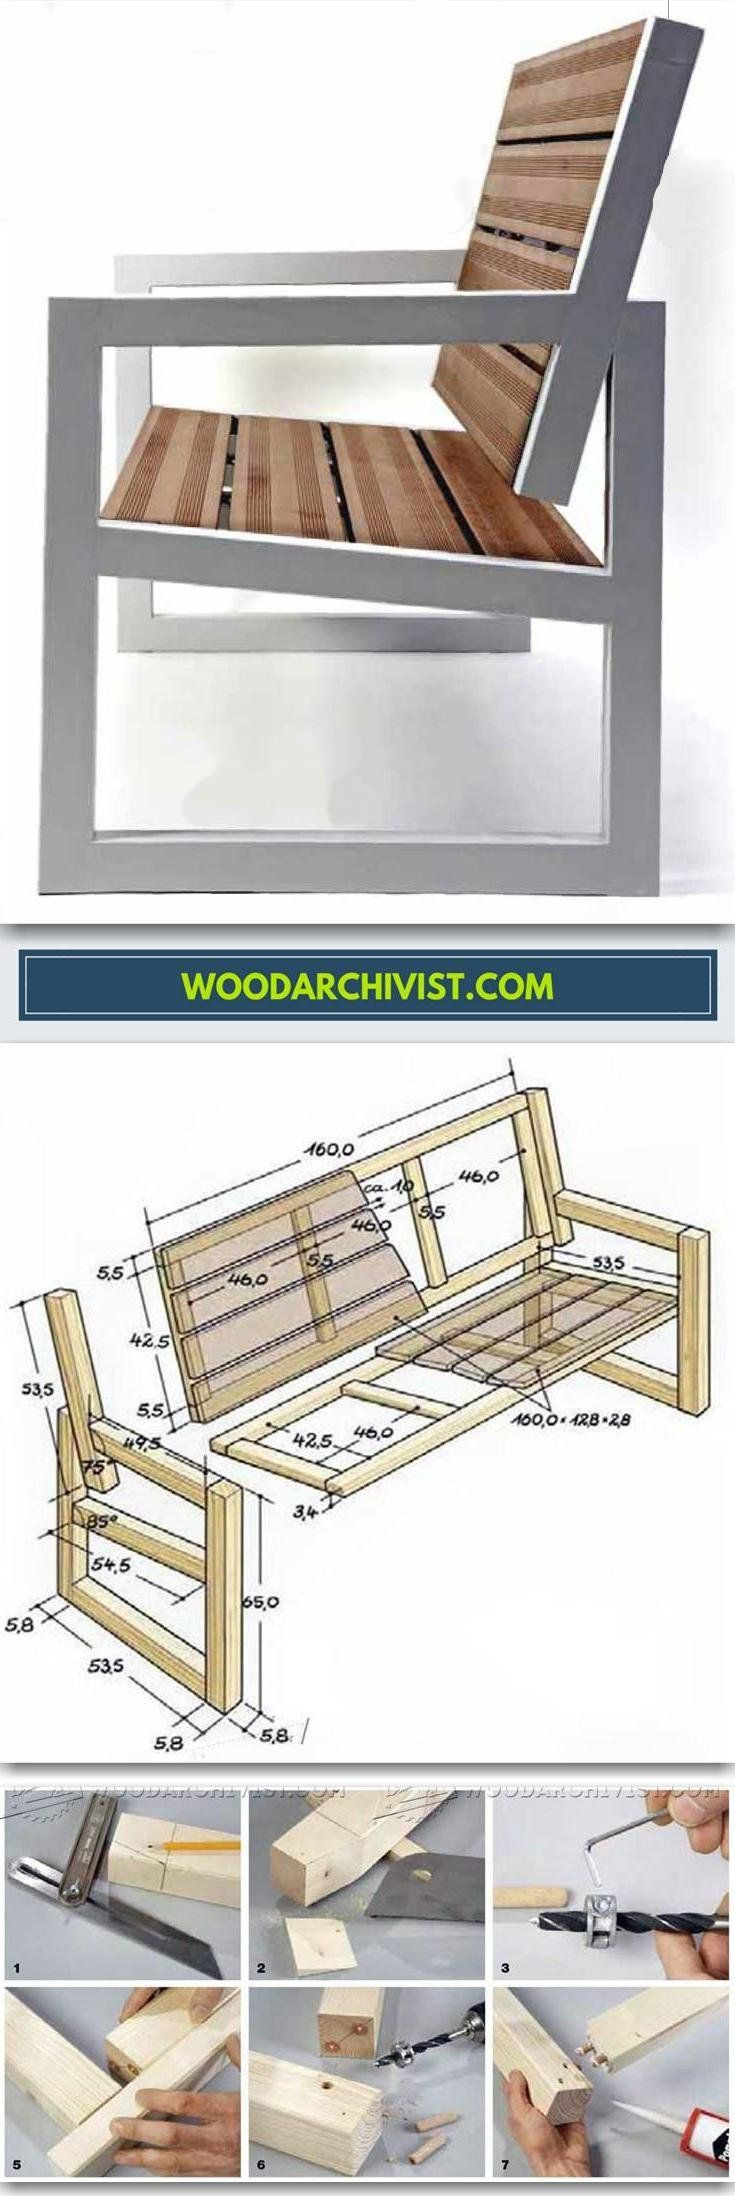 DIY Outdoor Bench - Outdoor Furniture Plans and Projects | WoodArchivist.com